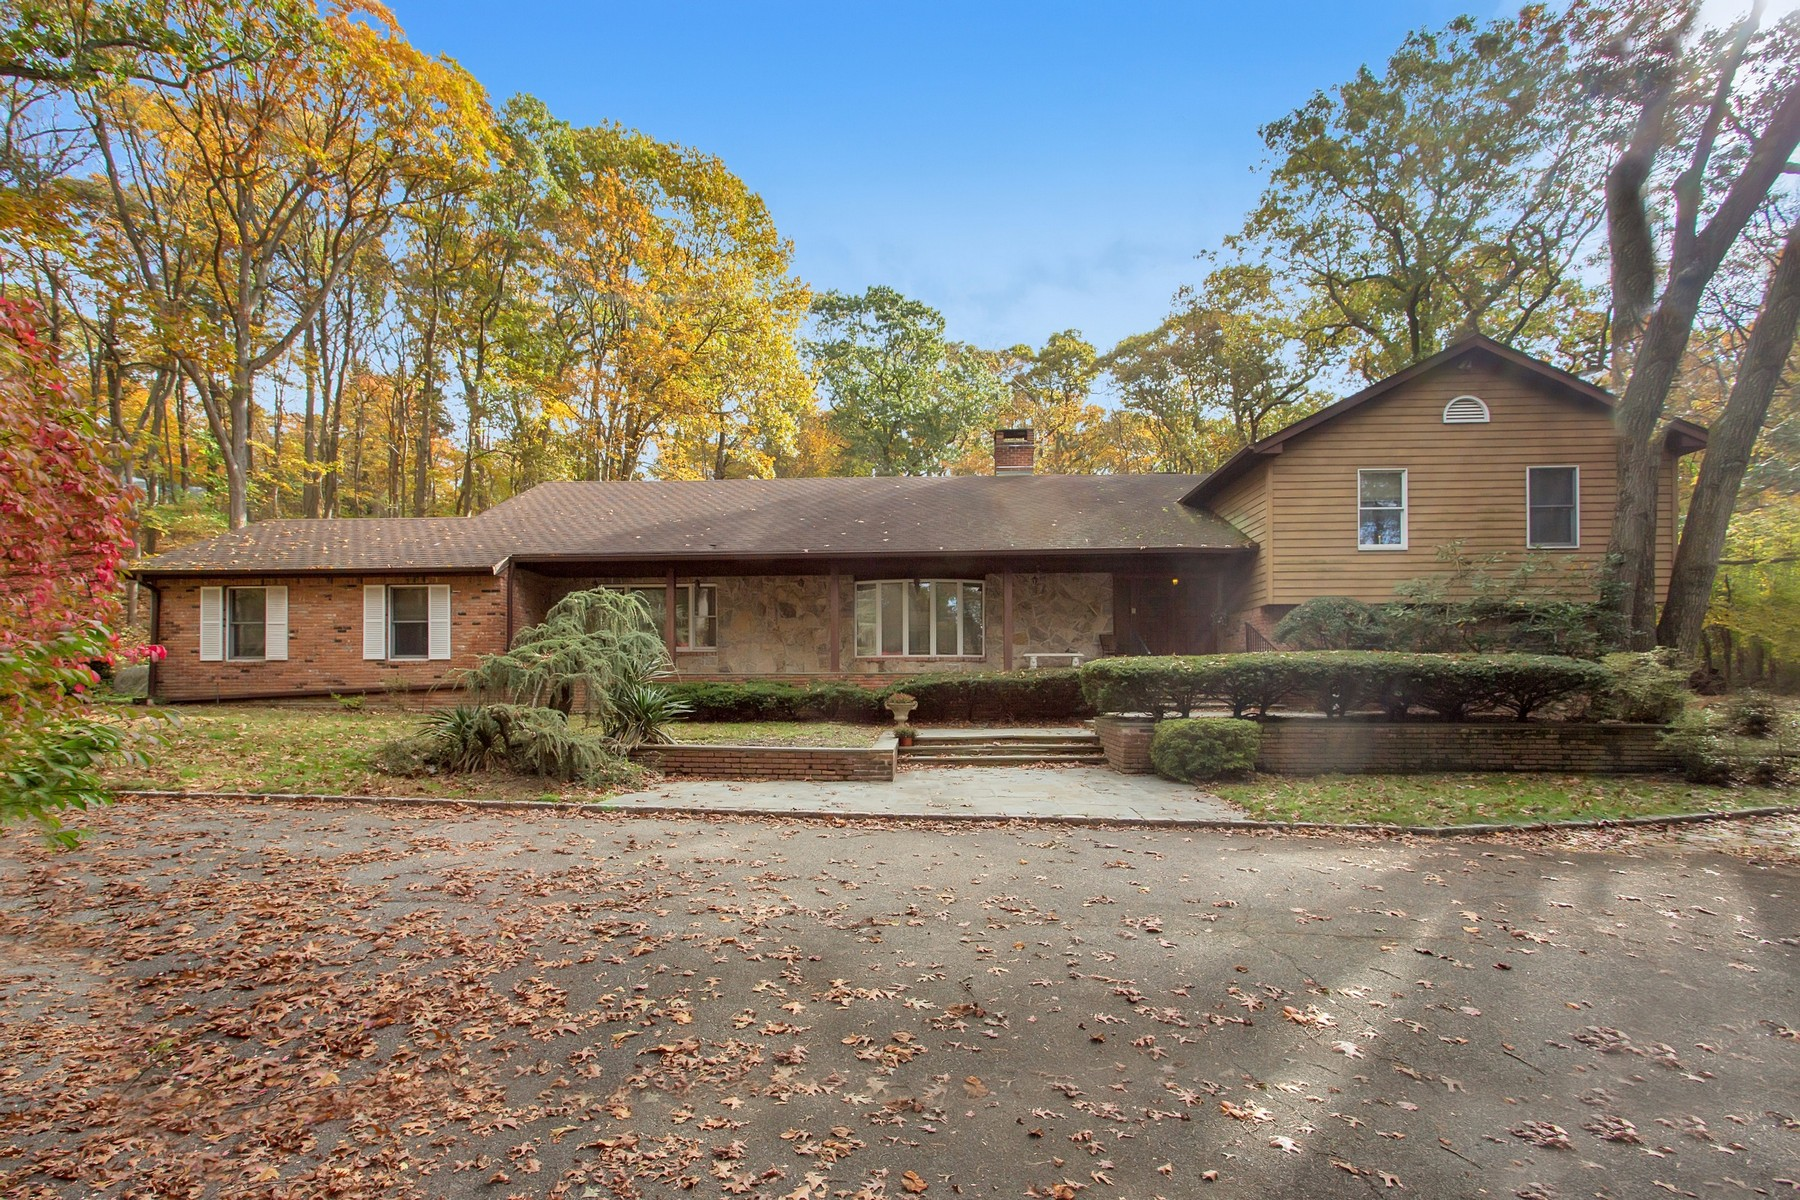 Single Family Home for Sale at 5 Birch Ct , Laurel Hollow, NY 11771 5 Birch Ct, Laurel Hollow, New York, 11771 United States